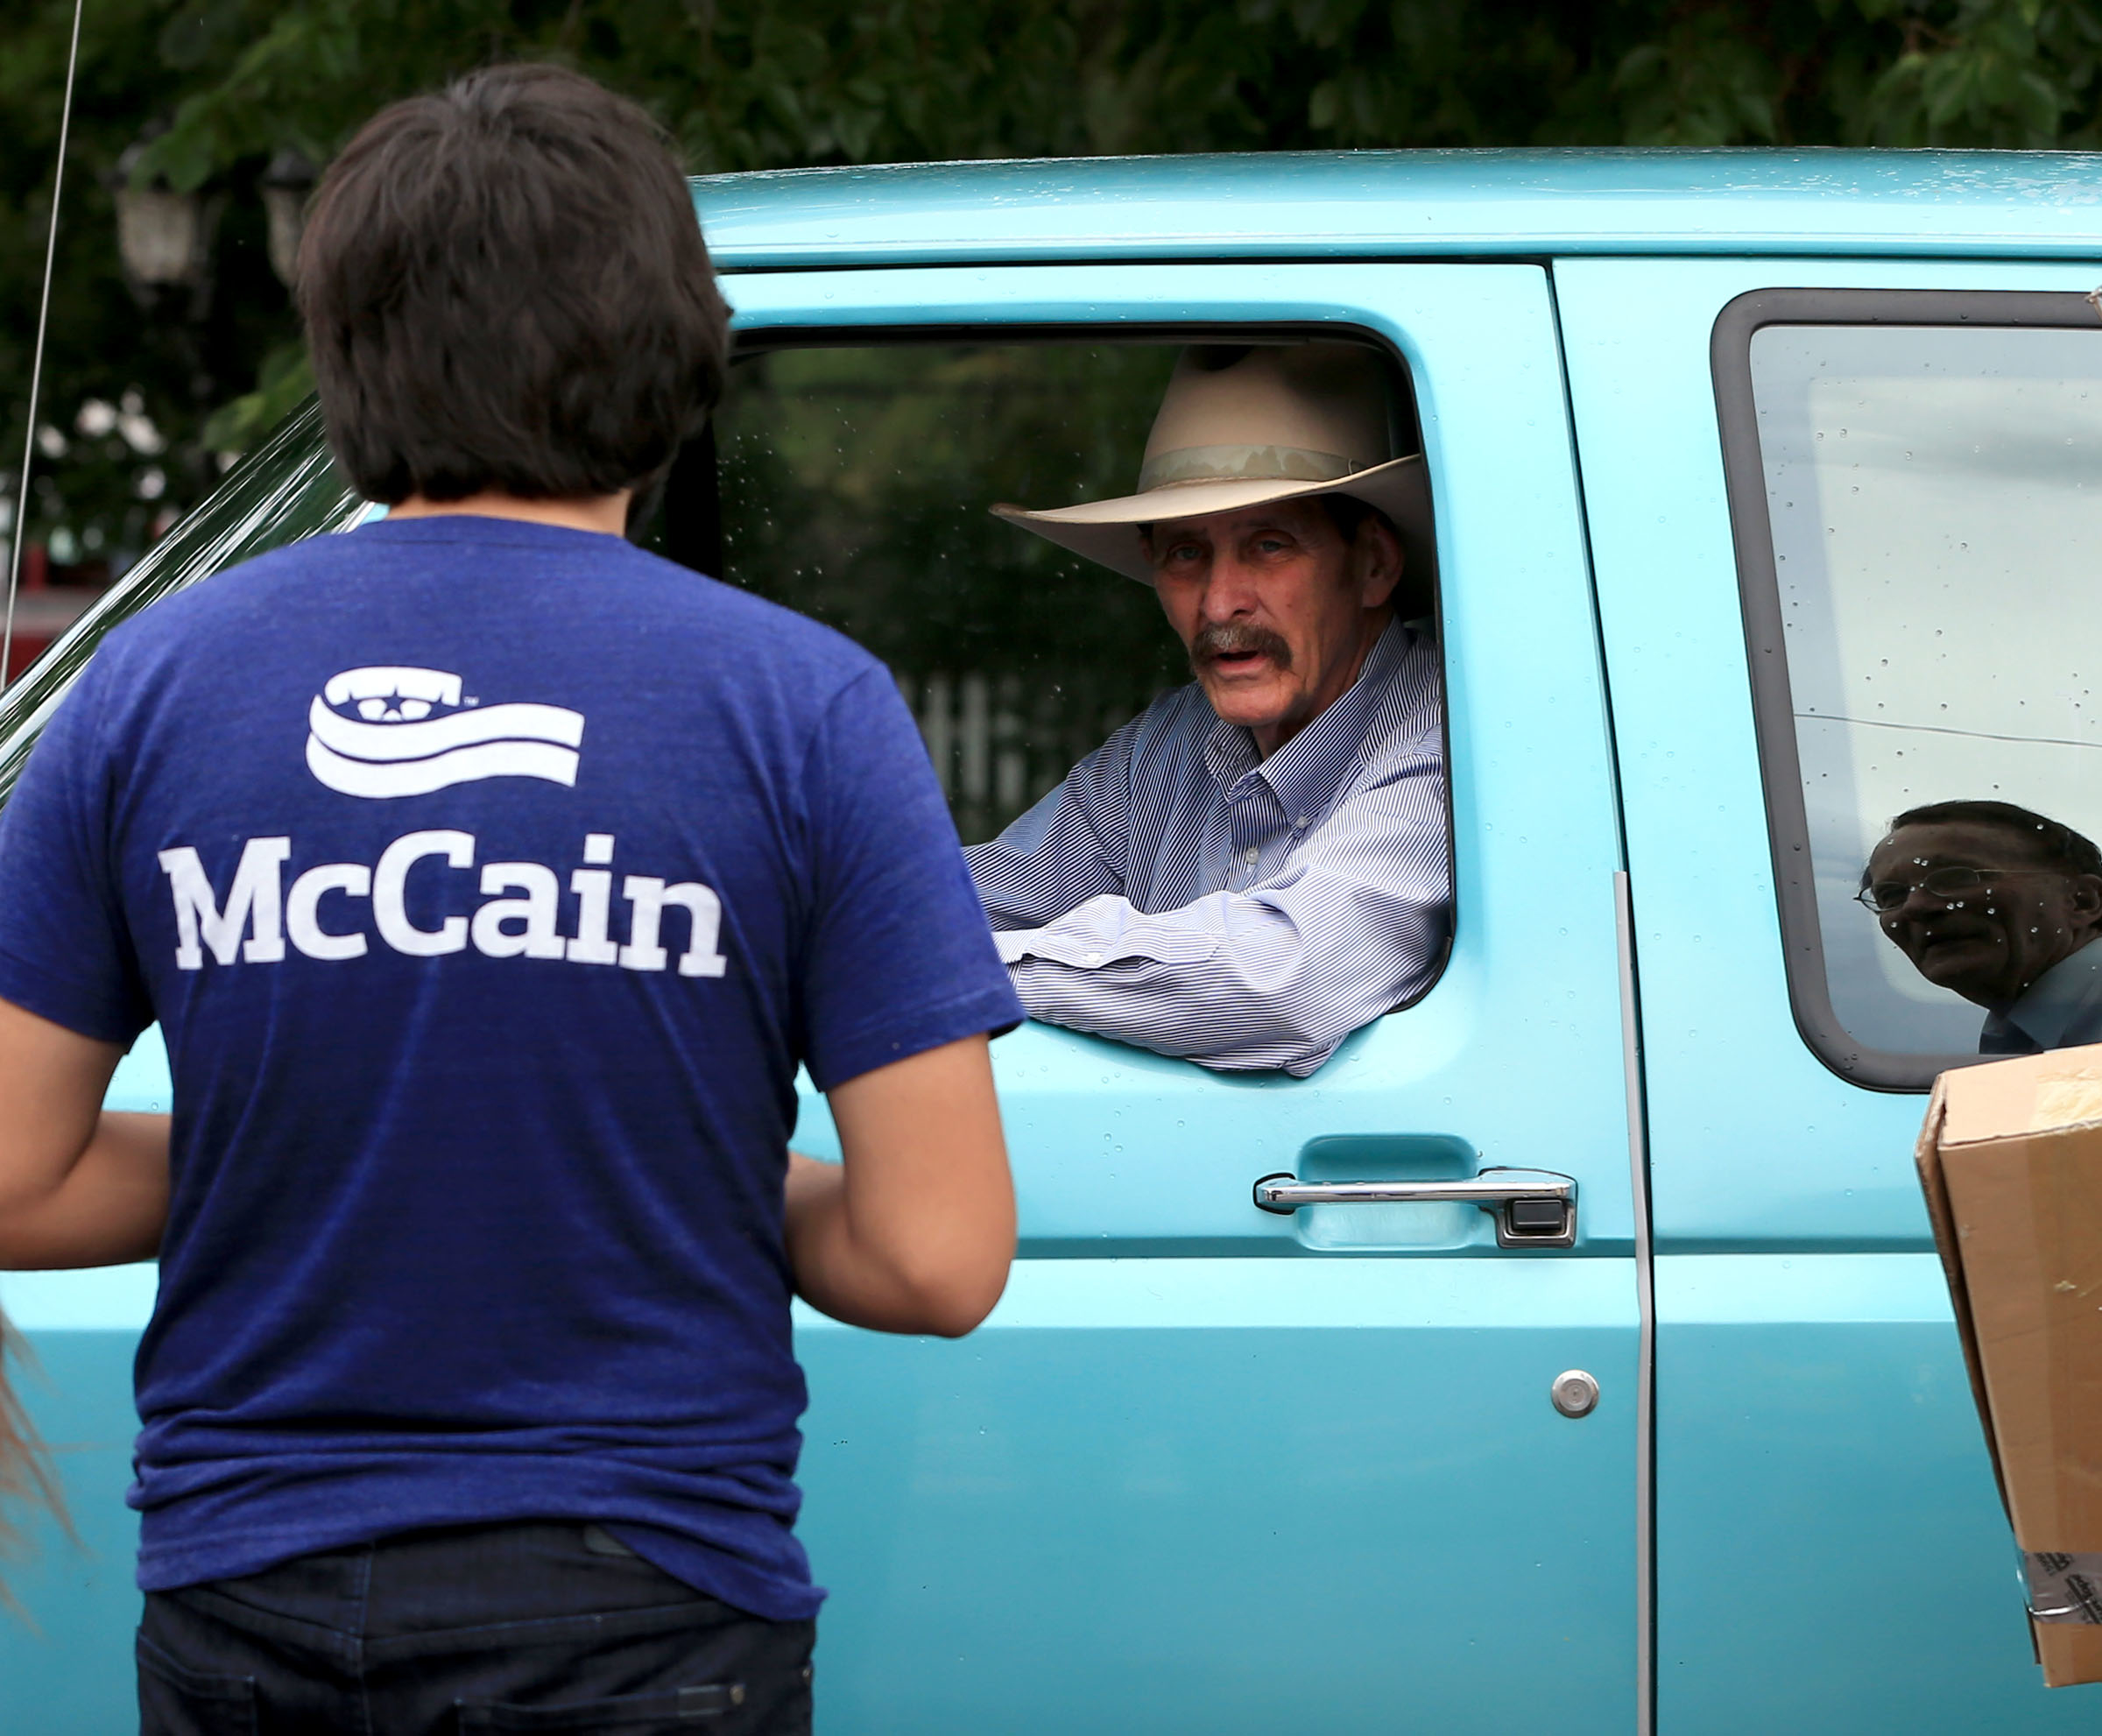 John Moore, mayor of Williams, Arizona, meets McCain campaign interns during their canvasing Tuesday. (Daniel A. Anderson)